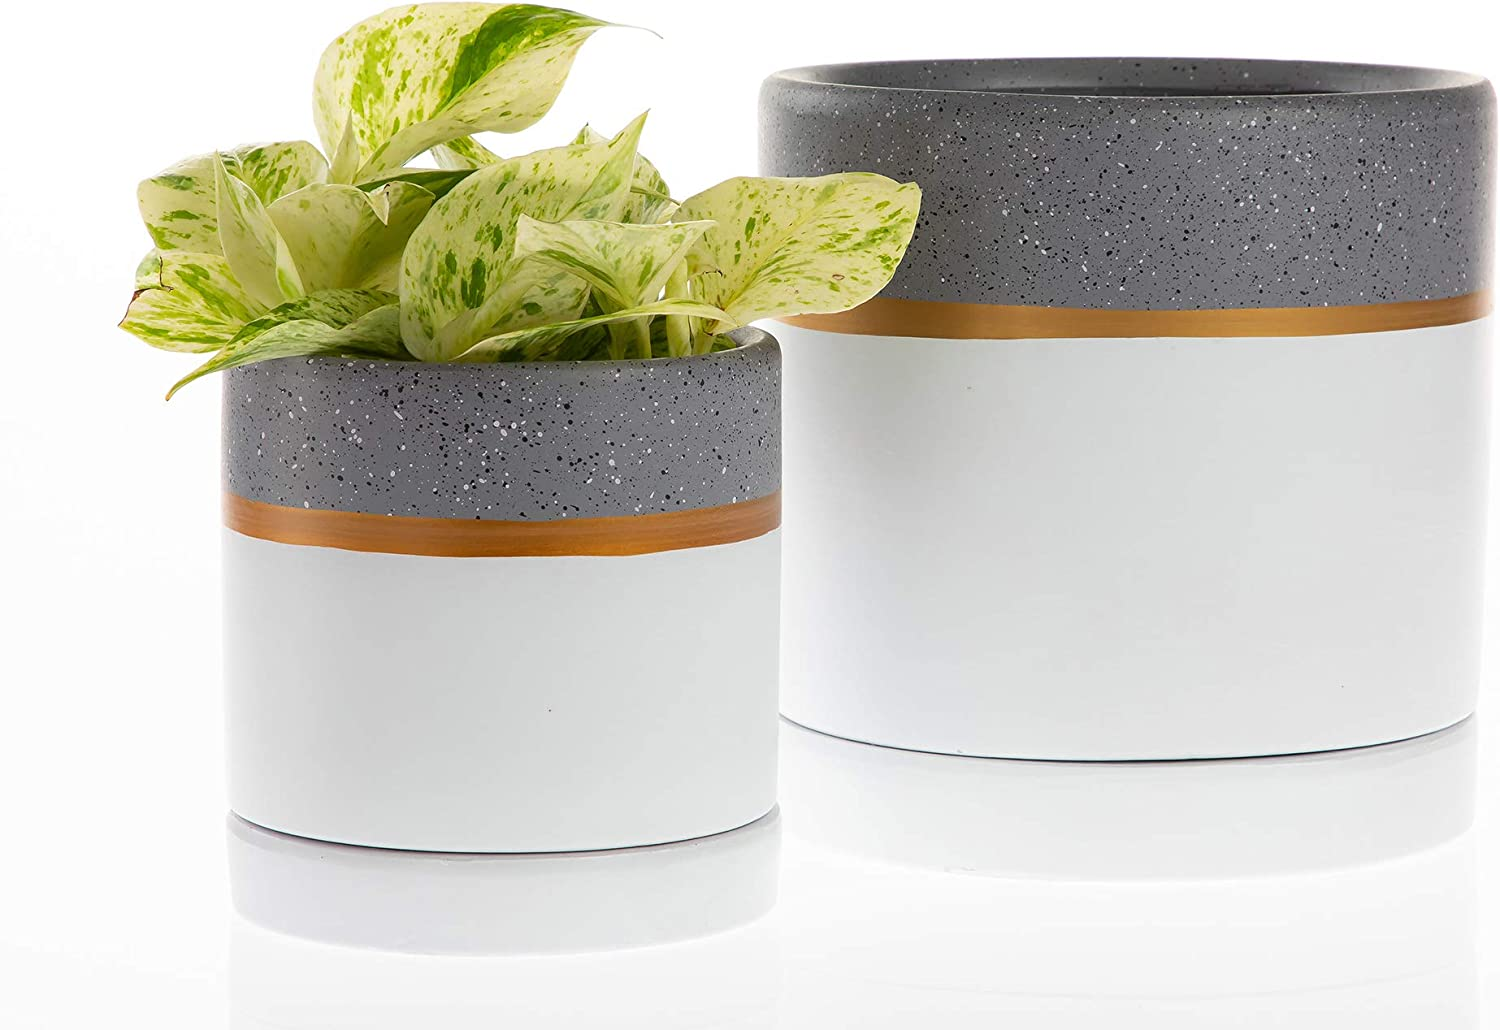 Chrissy Ceramic Pot price with Saucer Modern Decor Ranking TOP20 Home or O for